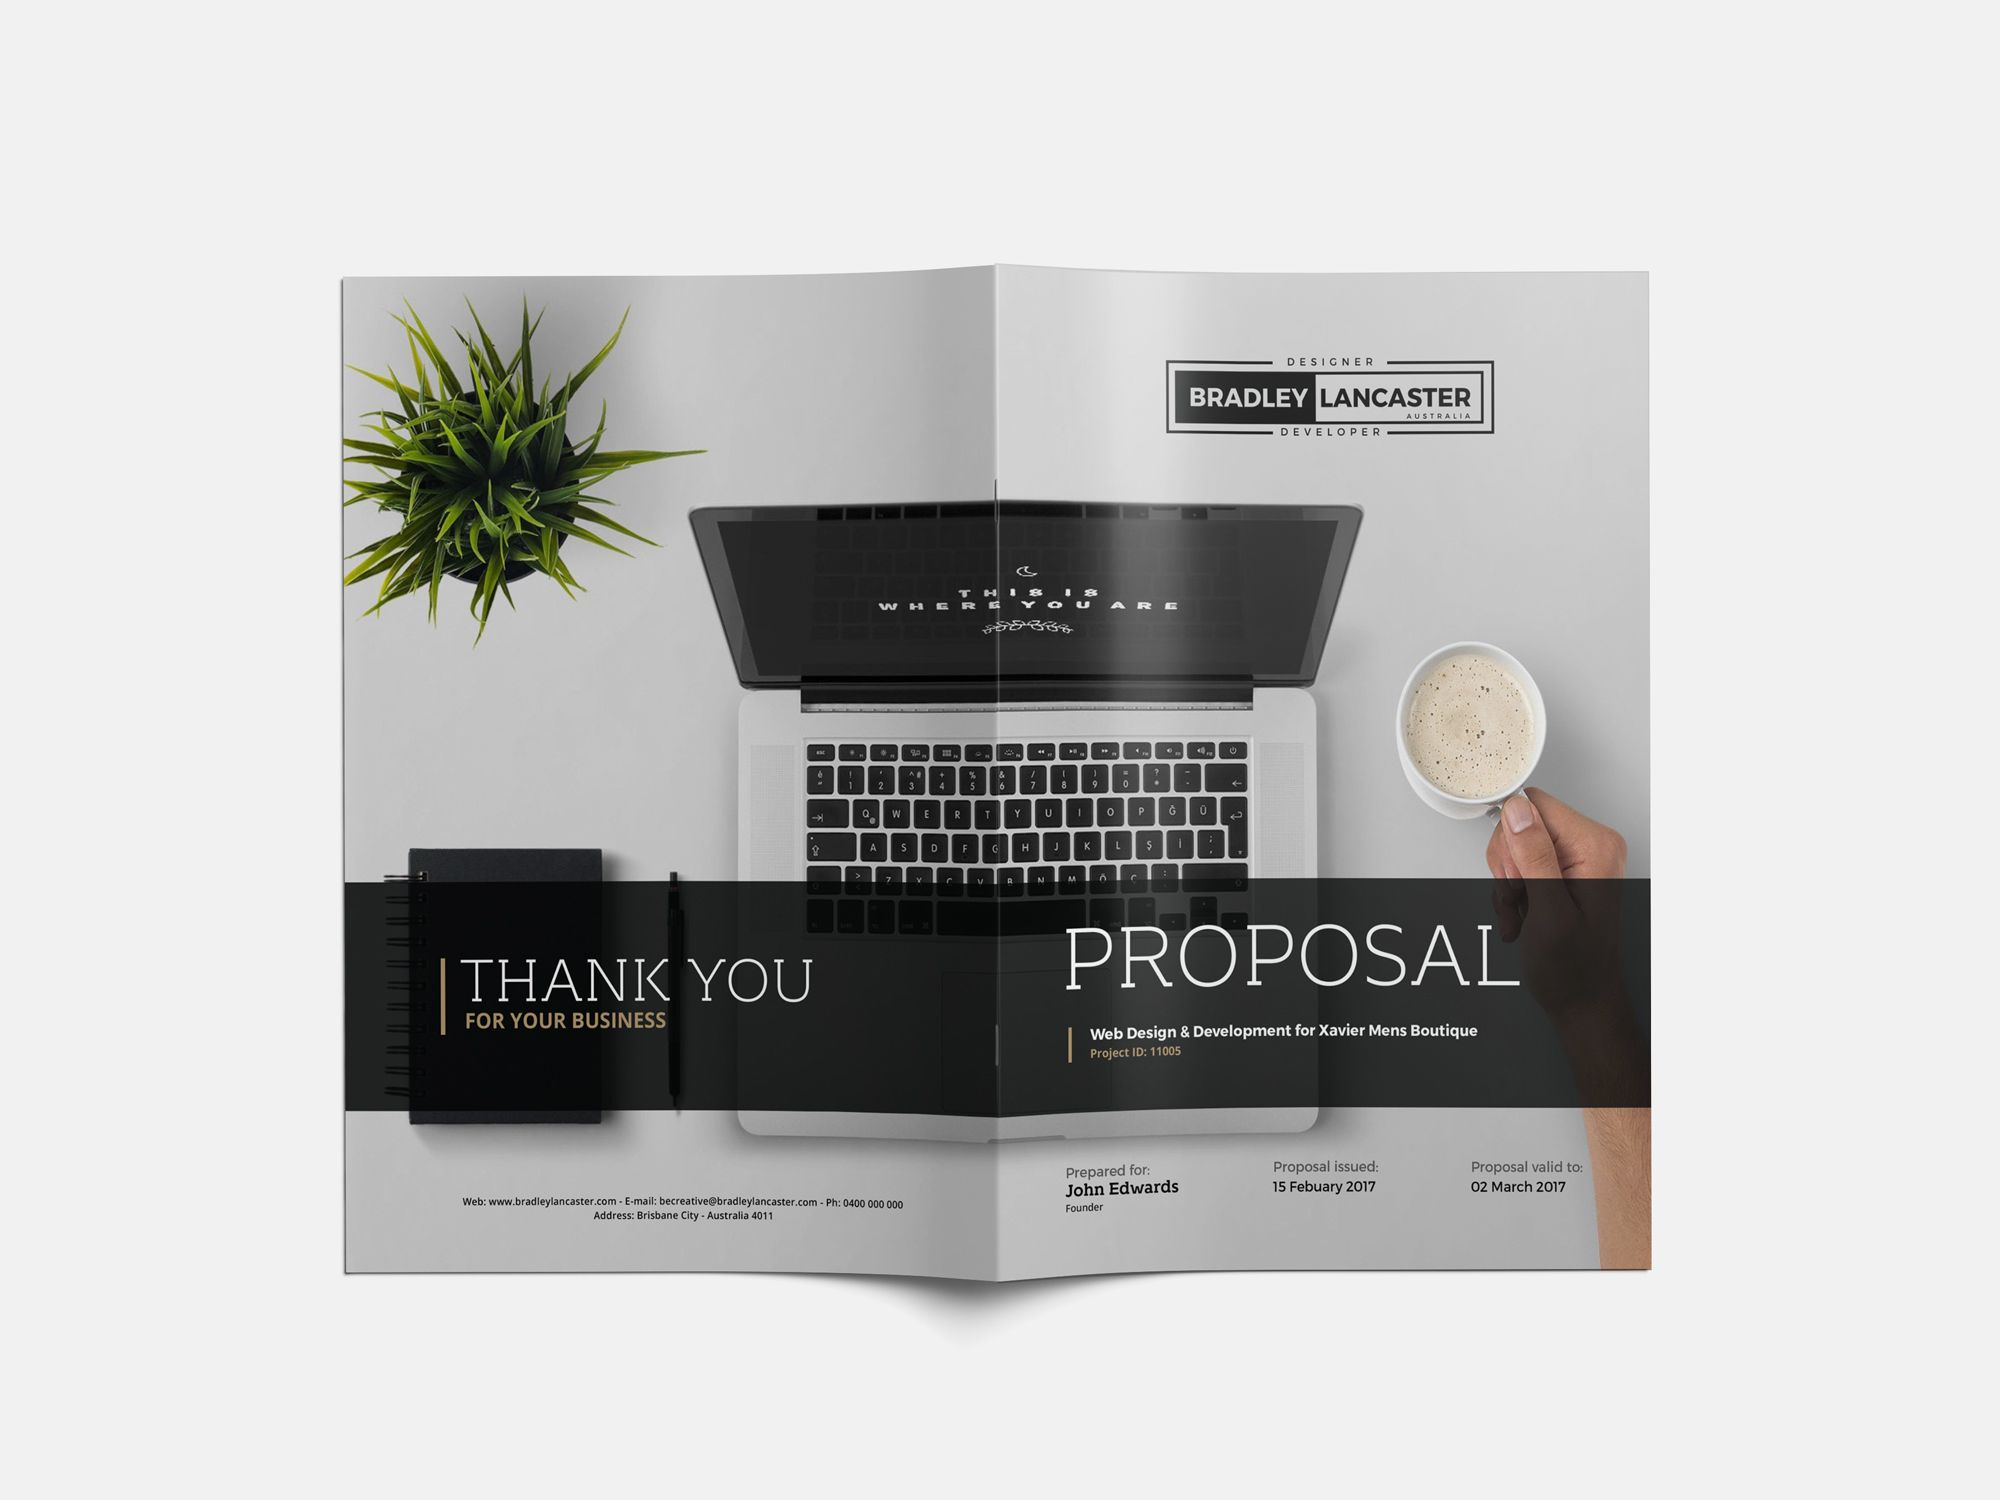 website development proposals